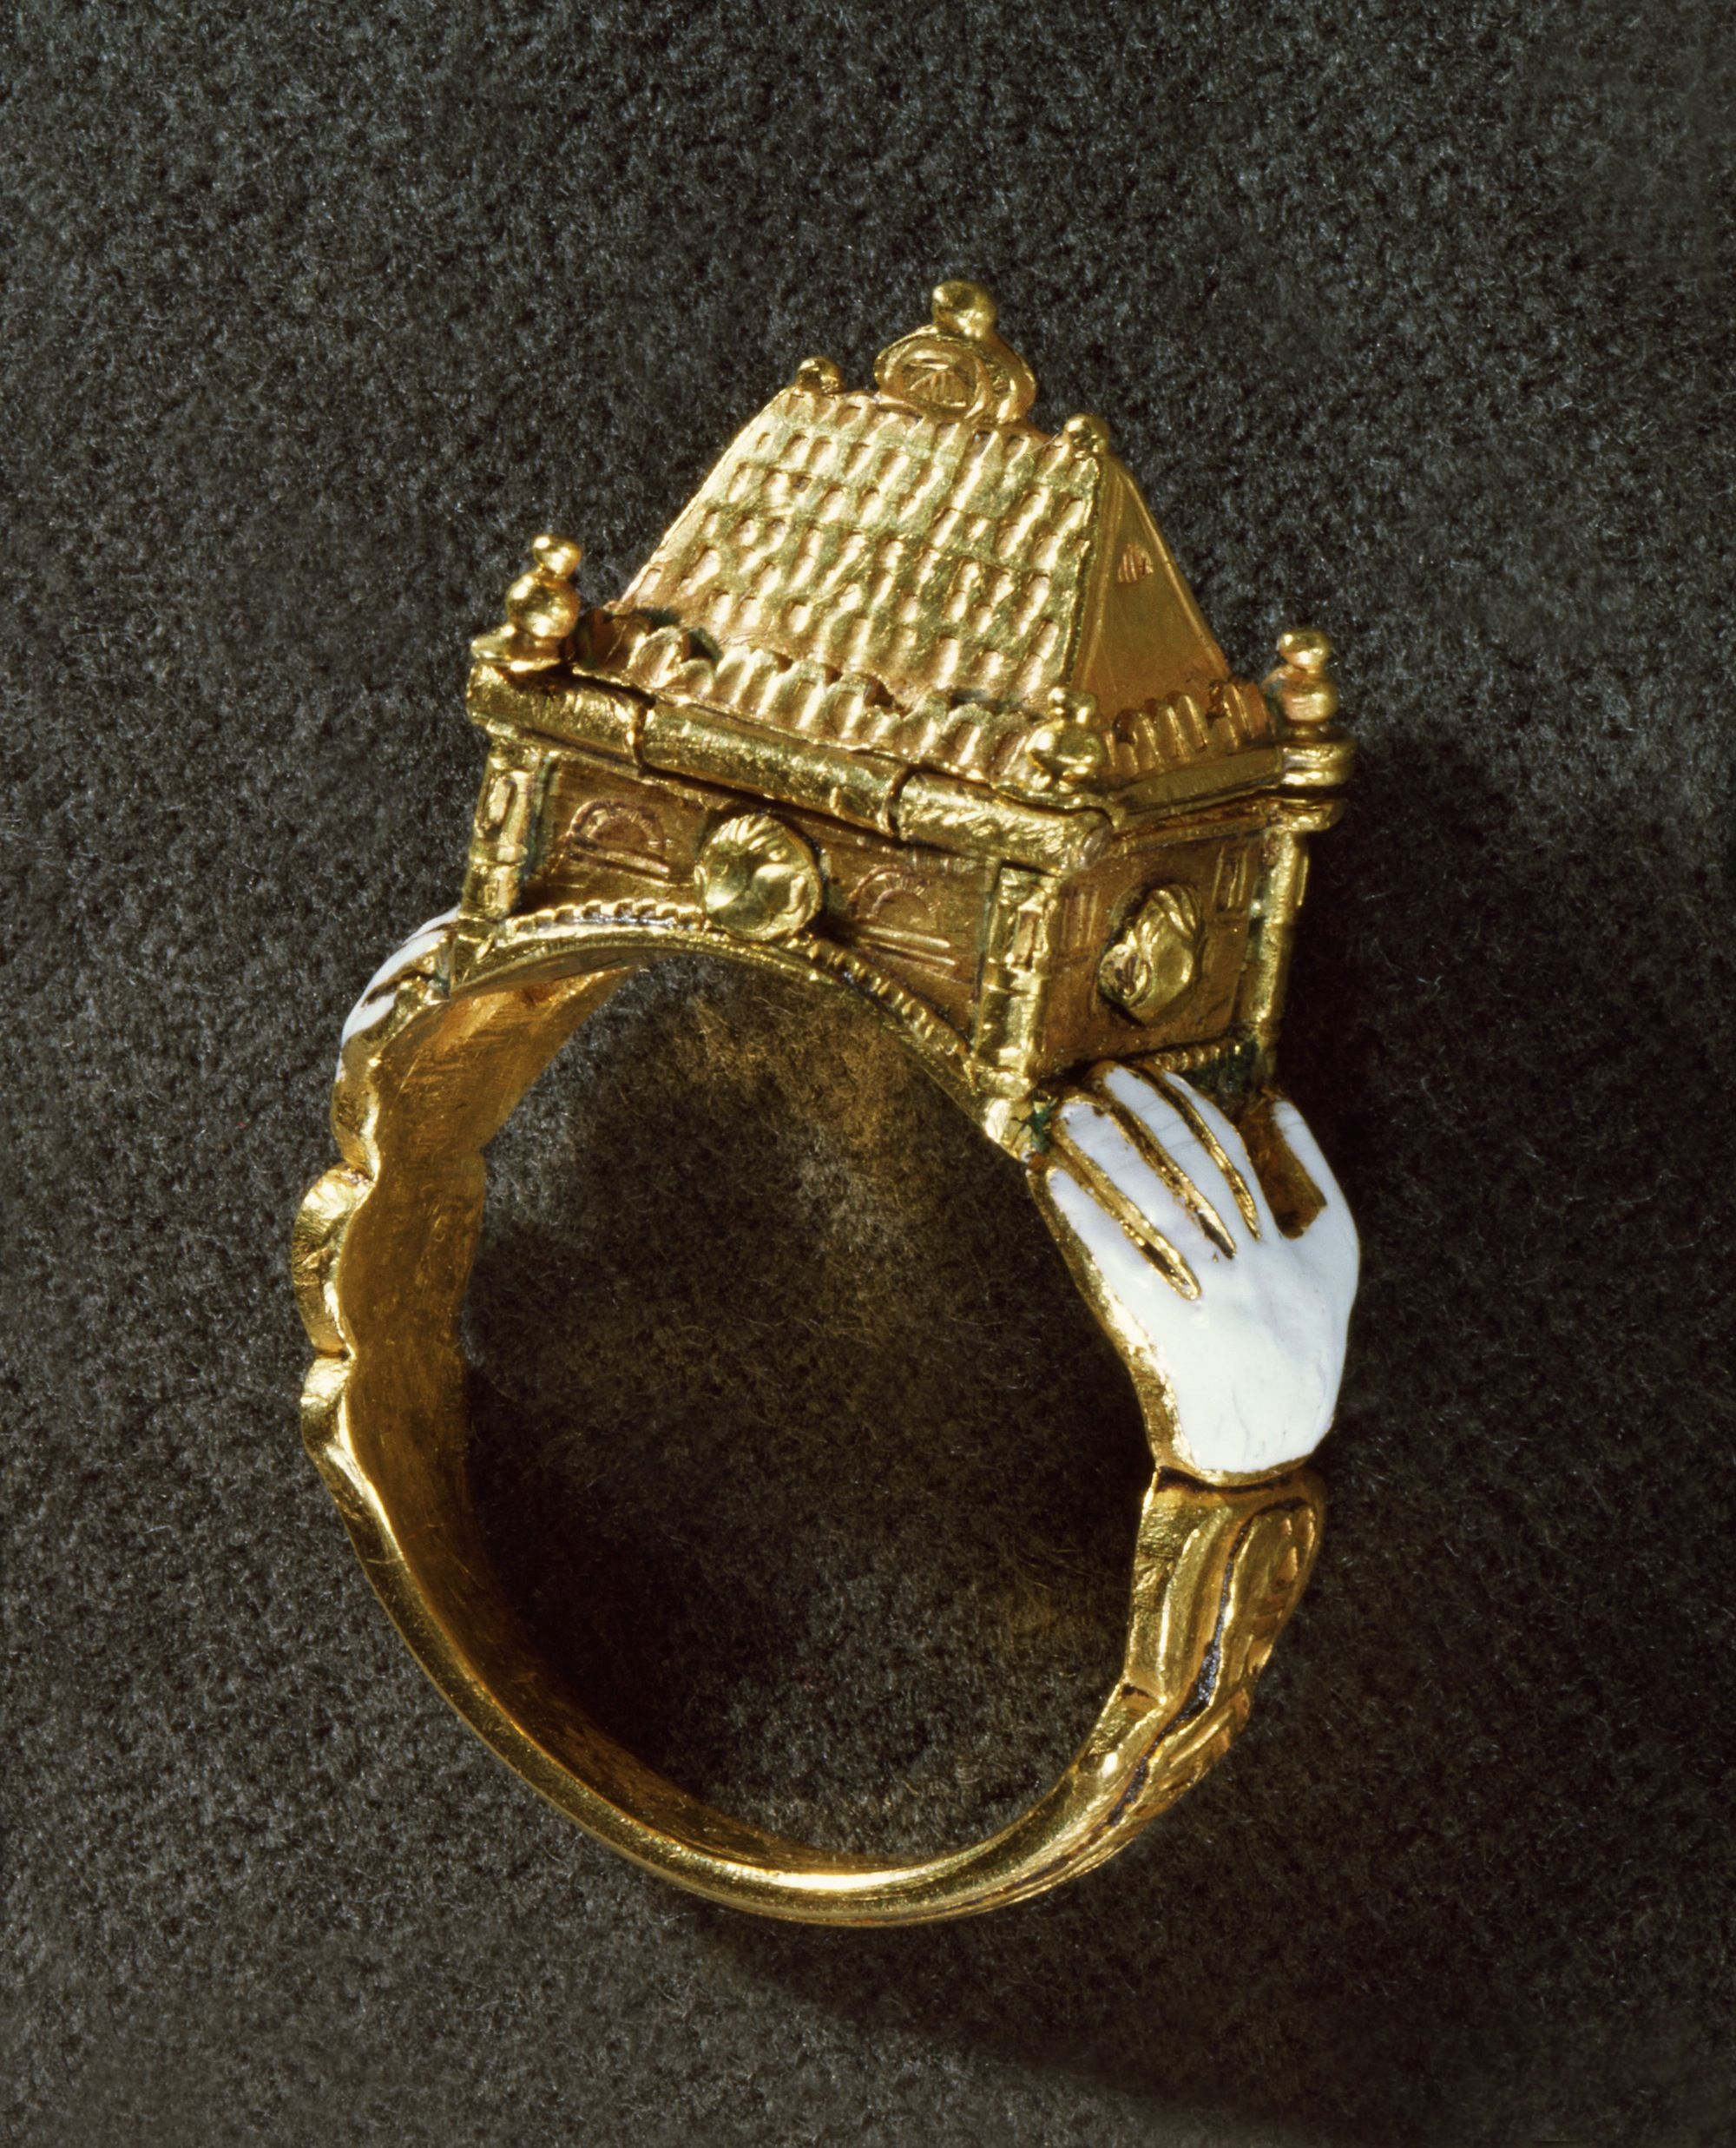 Pin Maria Dolores Fernandez Antique Jewelry 500